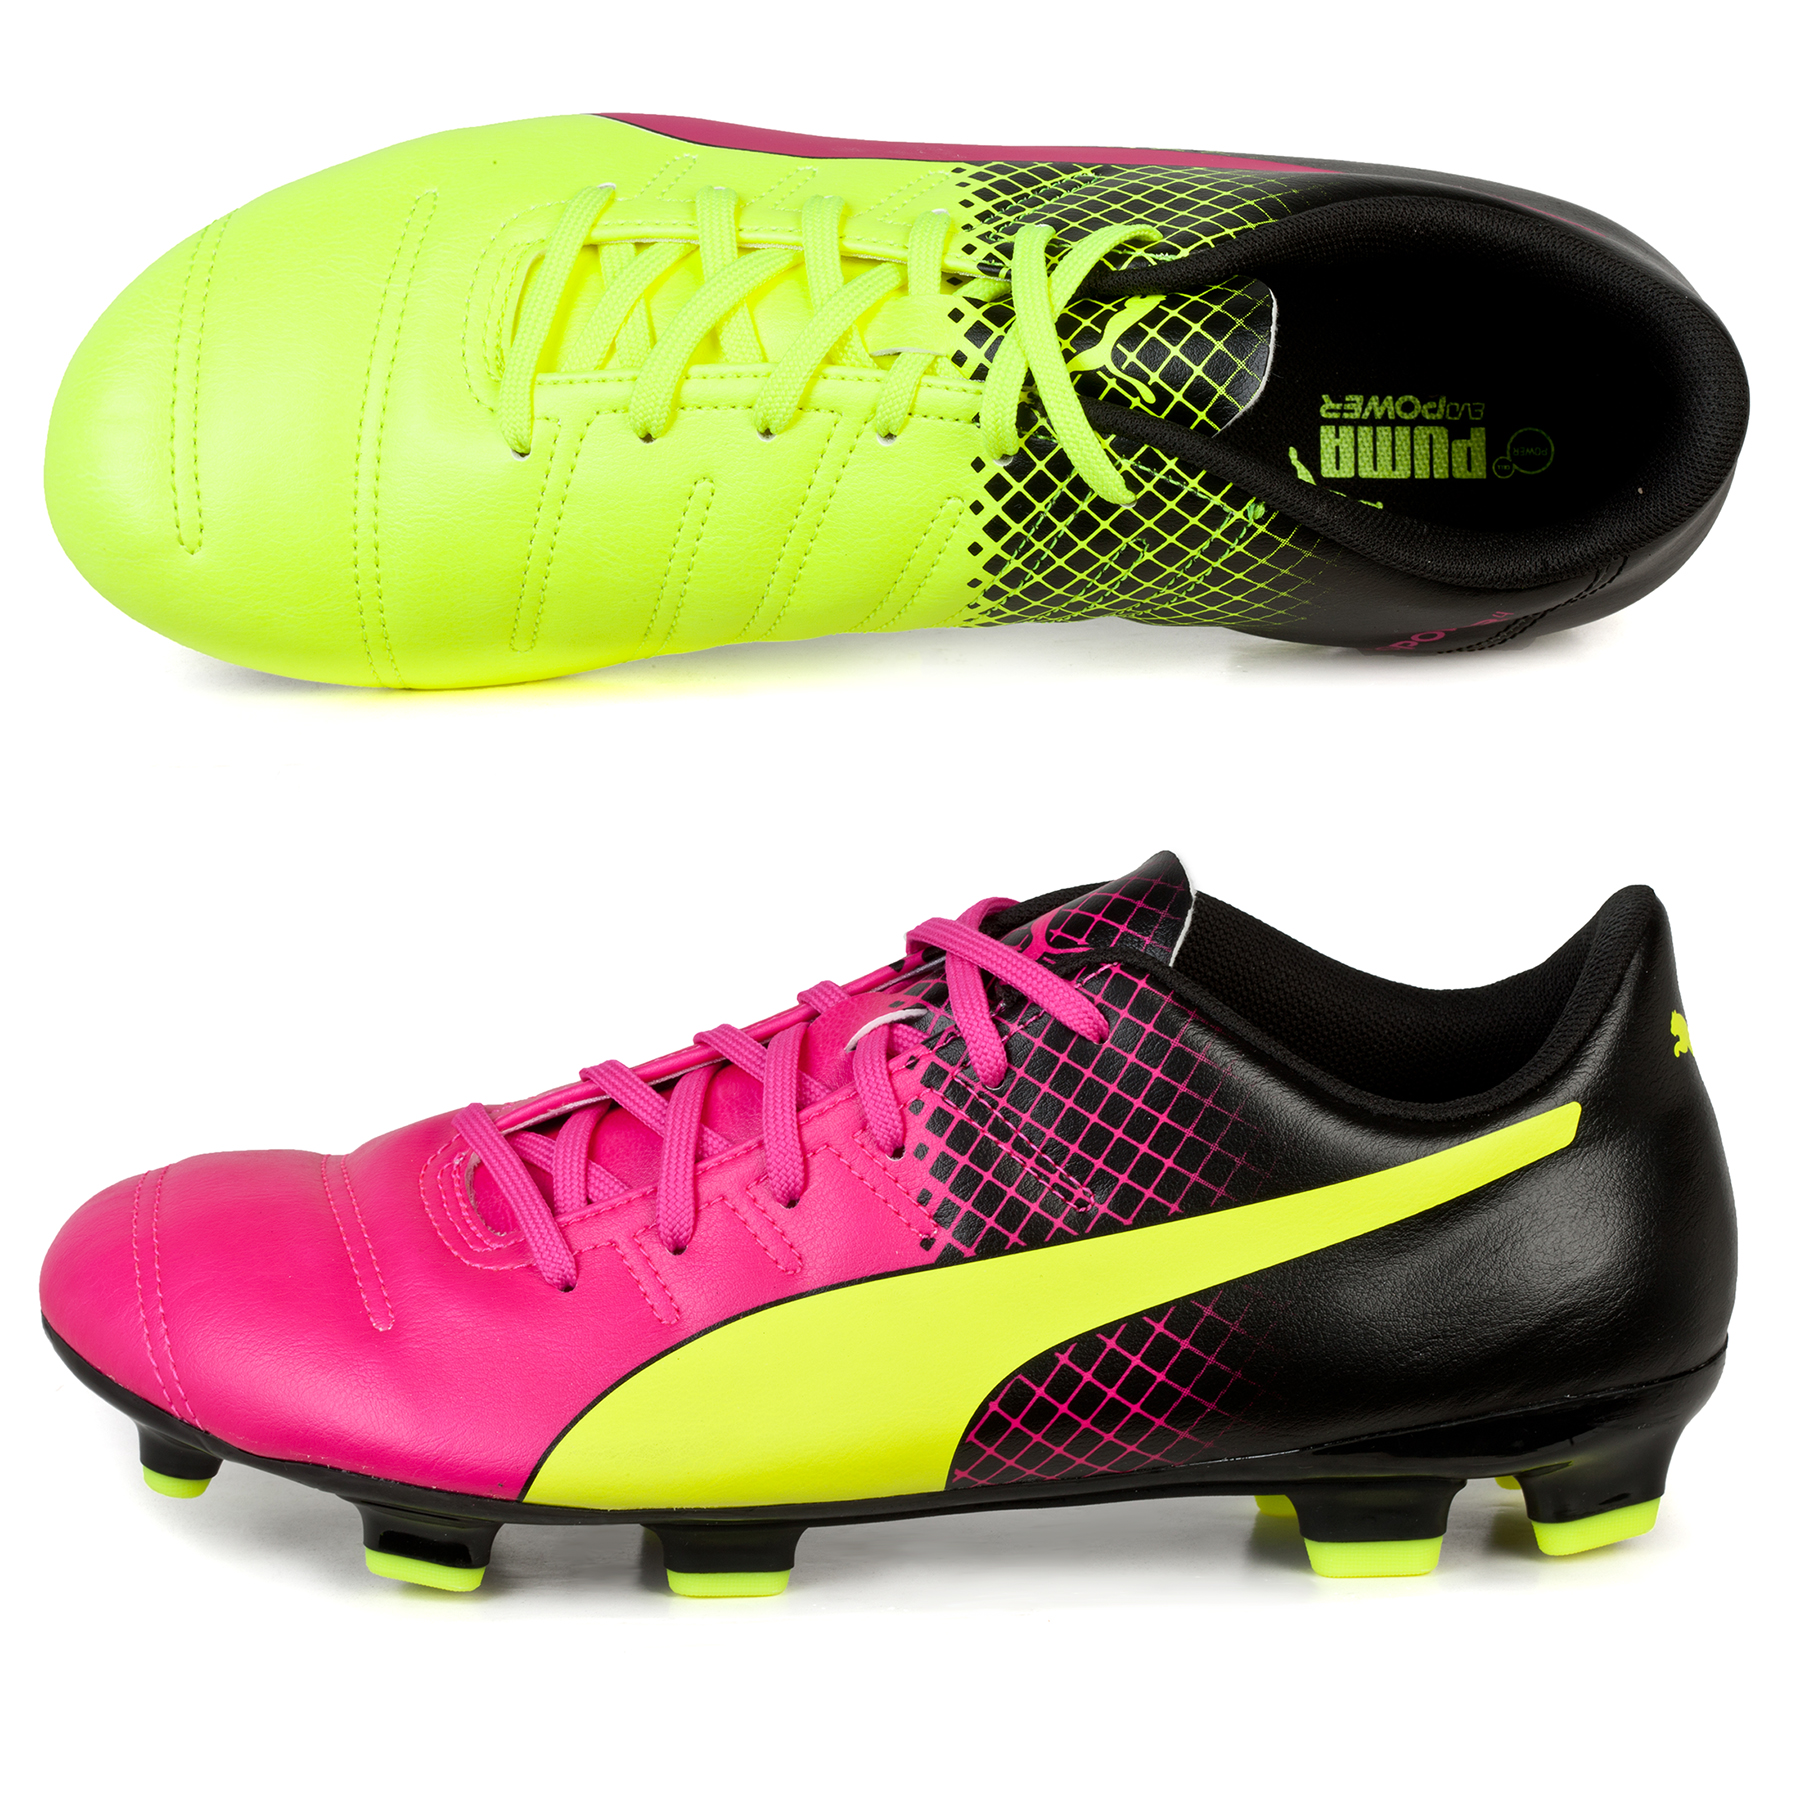 Puma evoPOWER 4.3 Tricks FG Pink